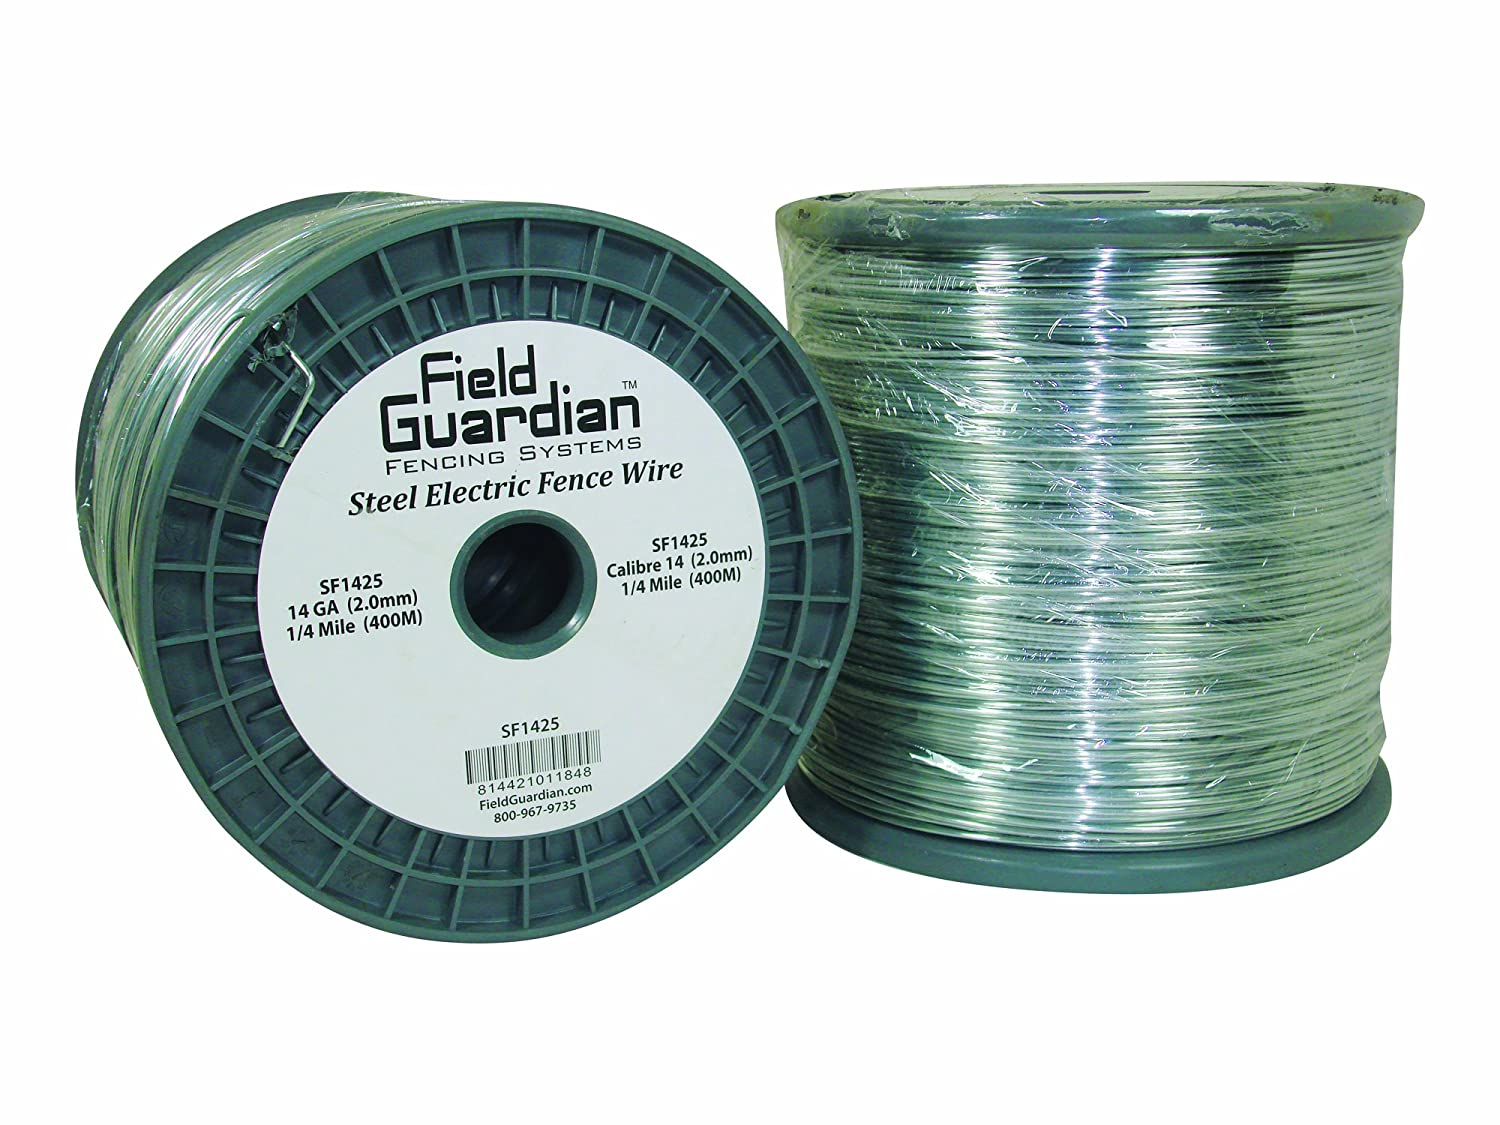 Amazon.com: Field Guardian 14-Guage Galvanized Steel Wire, 1/4 Miles ...